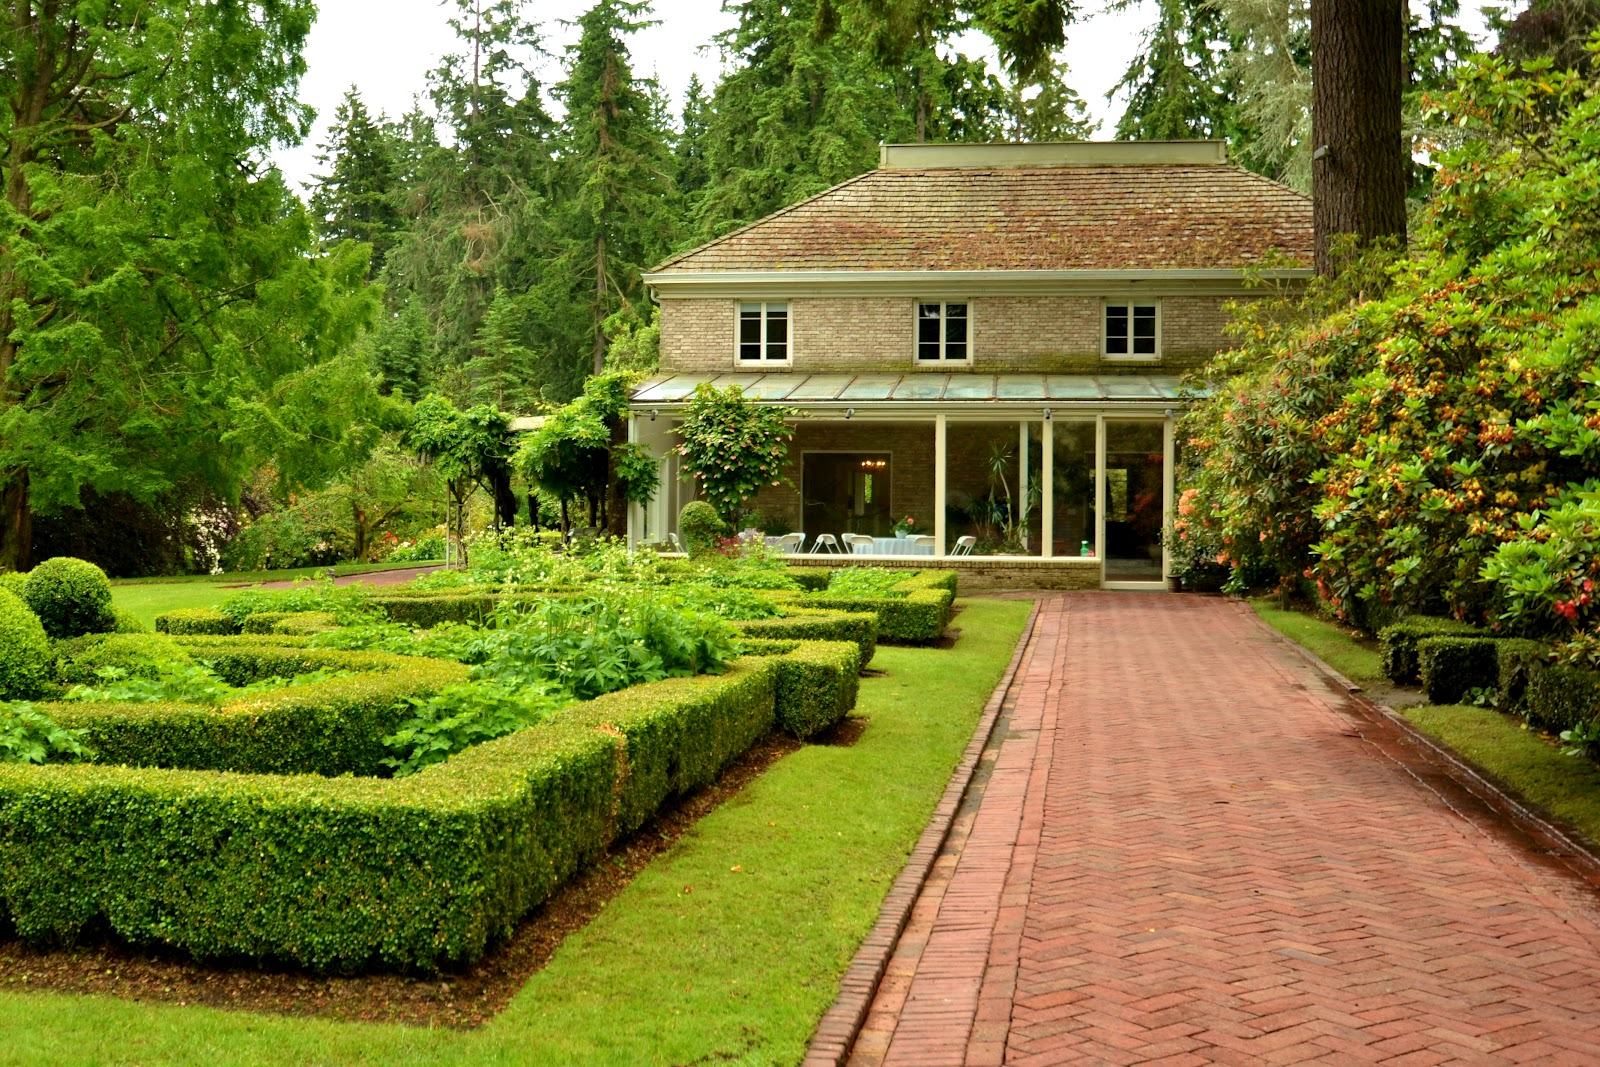 Tacoma Back Pages >> Bonnie King Photography: As I See It: Lakewold Gardens ...